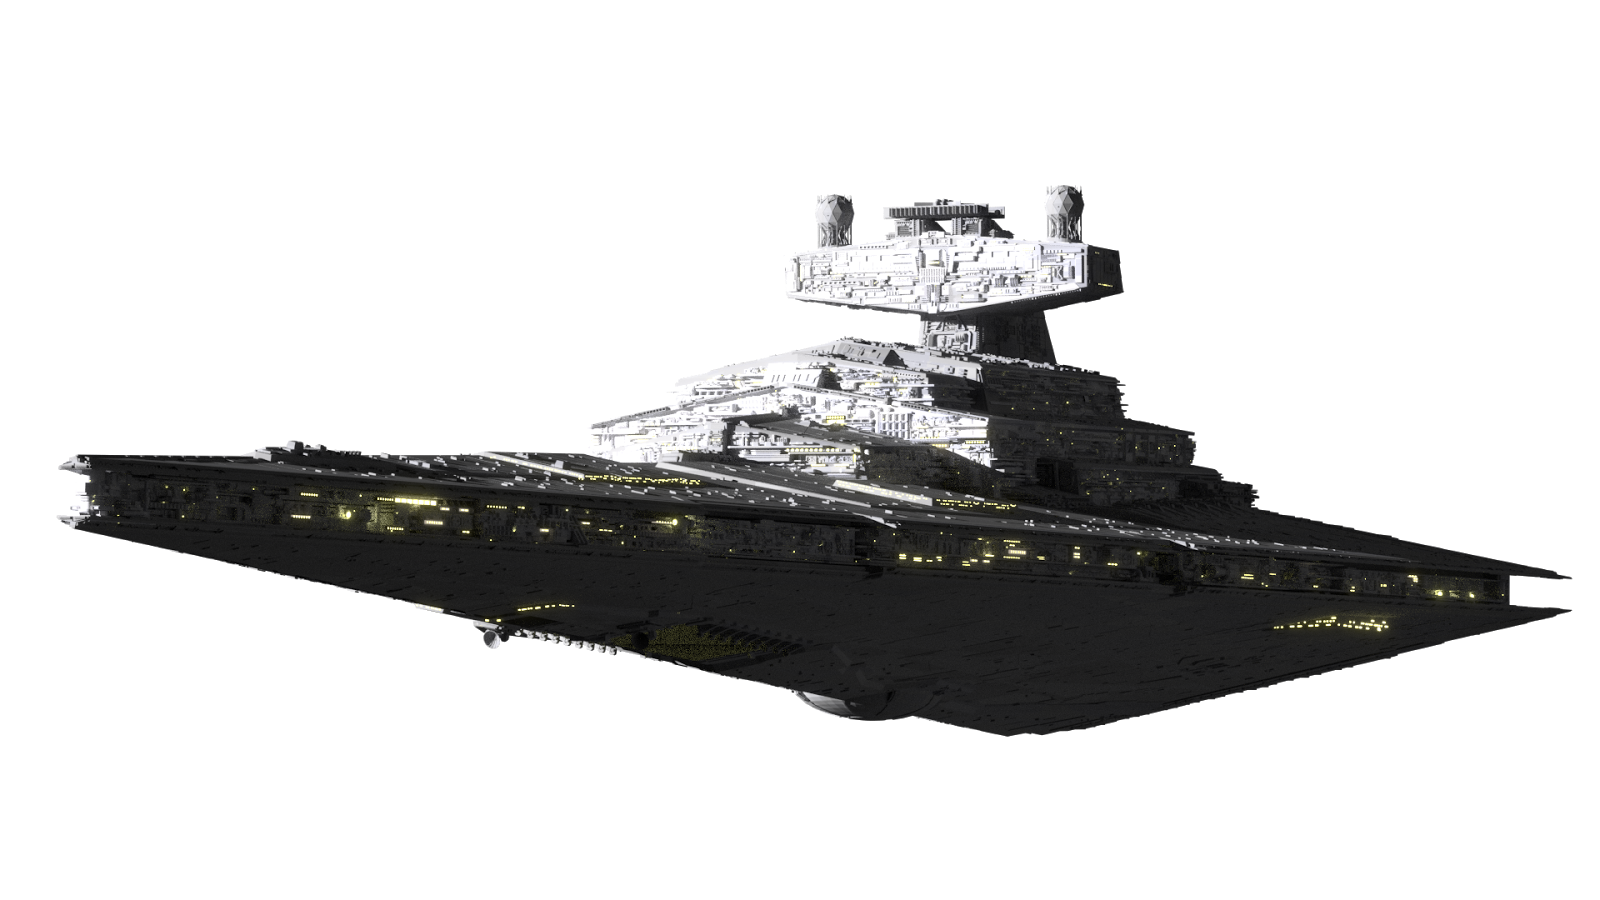 Star destroyer clipart graphic black and white library Star Wars Ships Png - save our oceans graphic black and white library